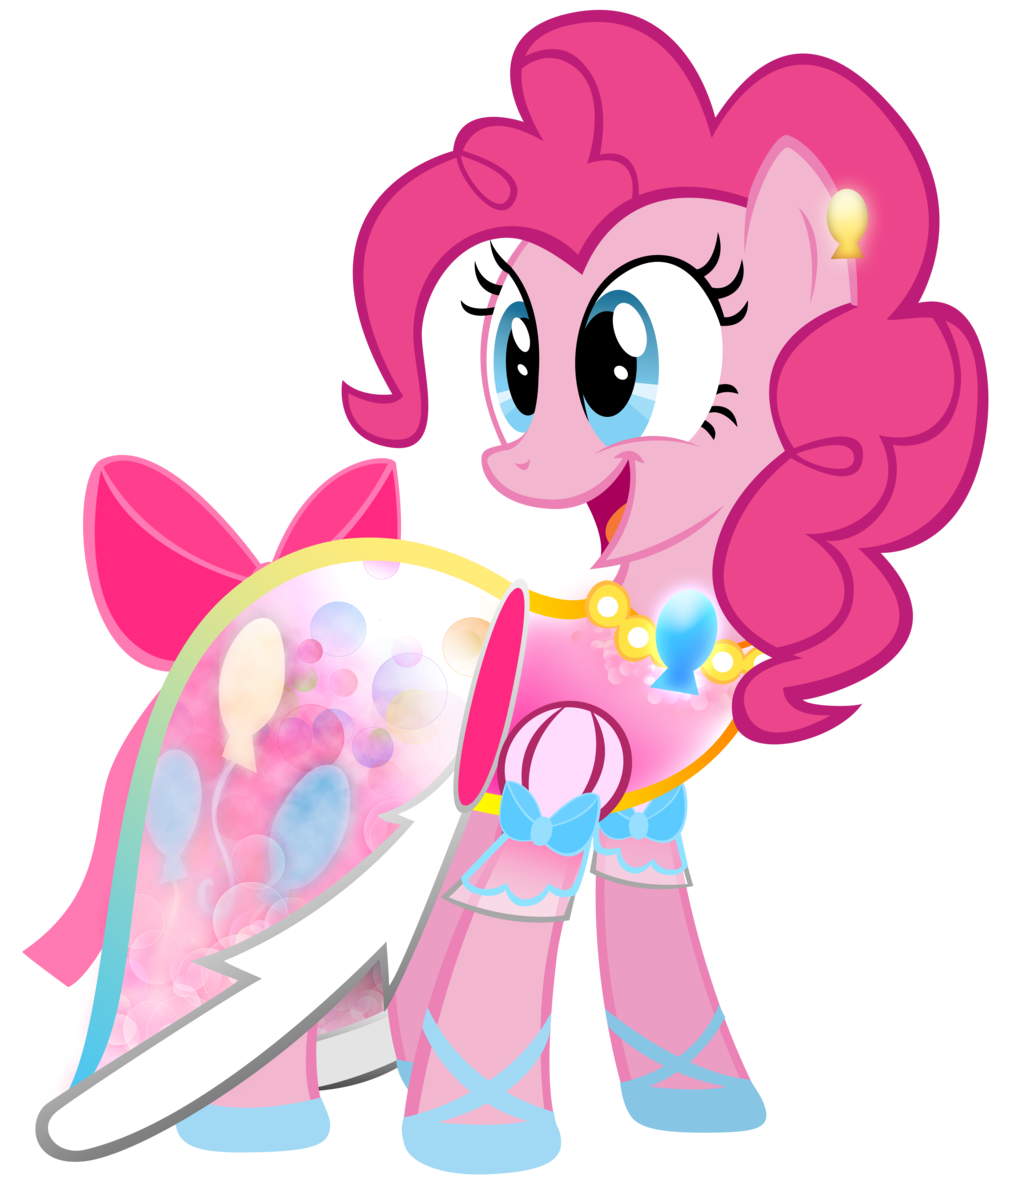 pinkie pie in a dress complete with a necklace and bowpng